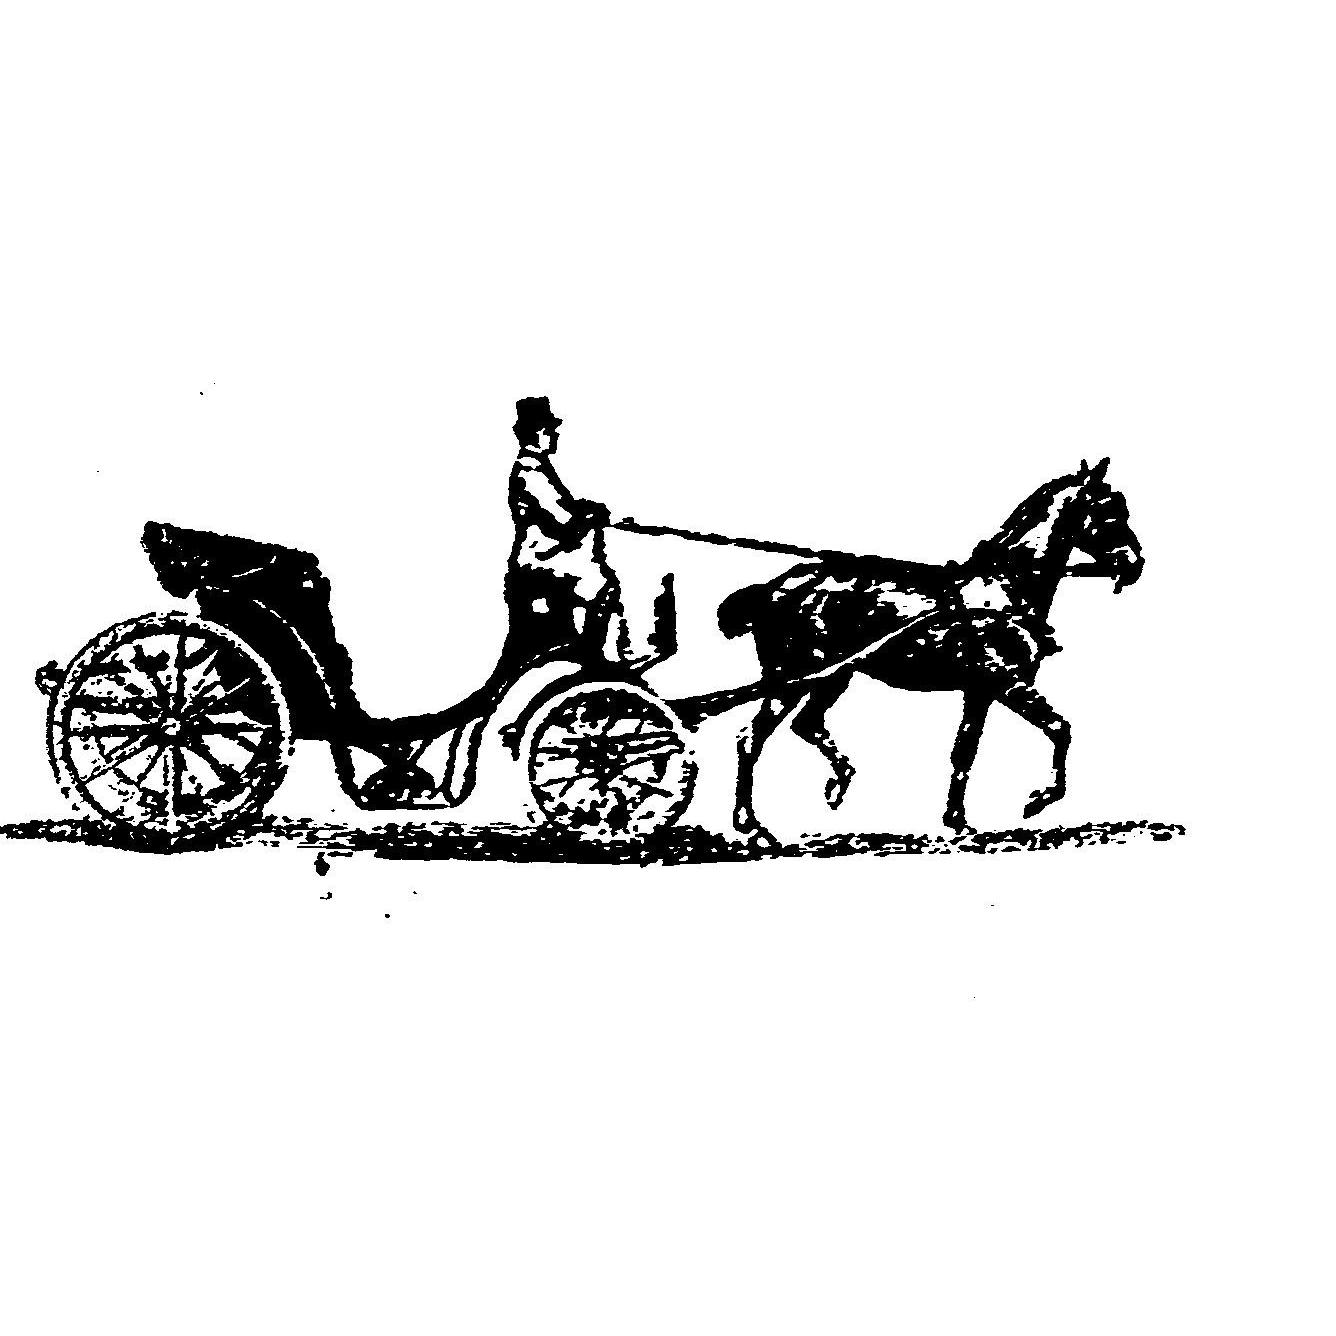 Antique Coach and Carriage Co. image 3